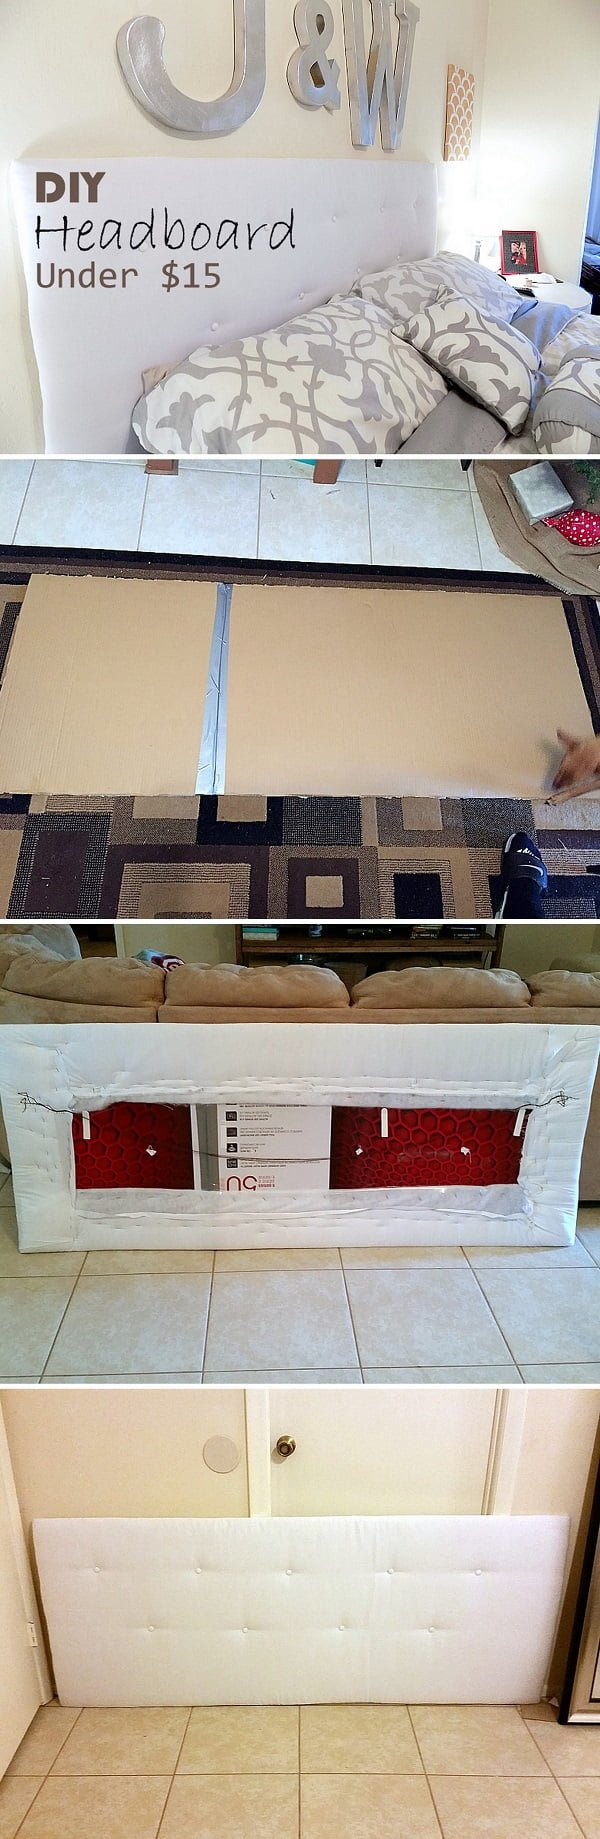 Check out this easy idea on how to make a #DIY headboard for under $15 #homedecor on a #budget #crafts #project